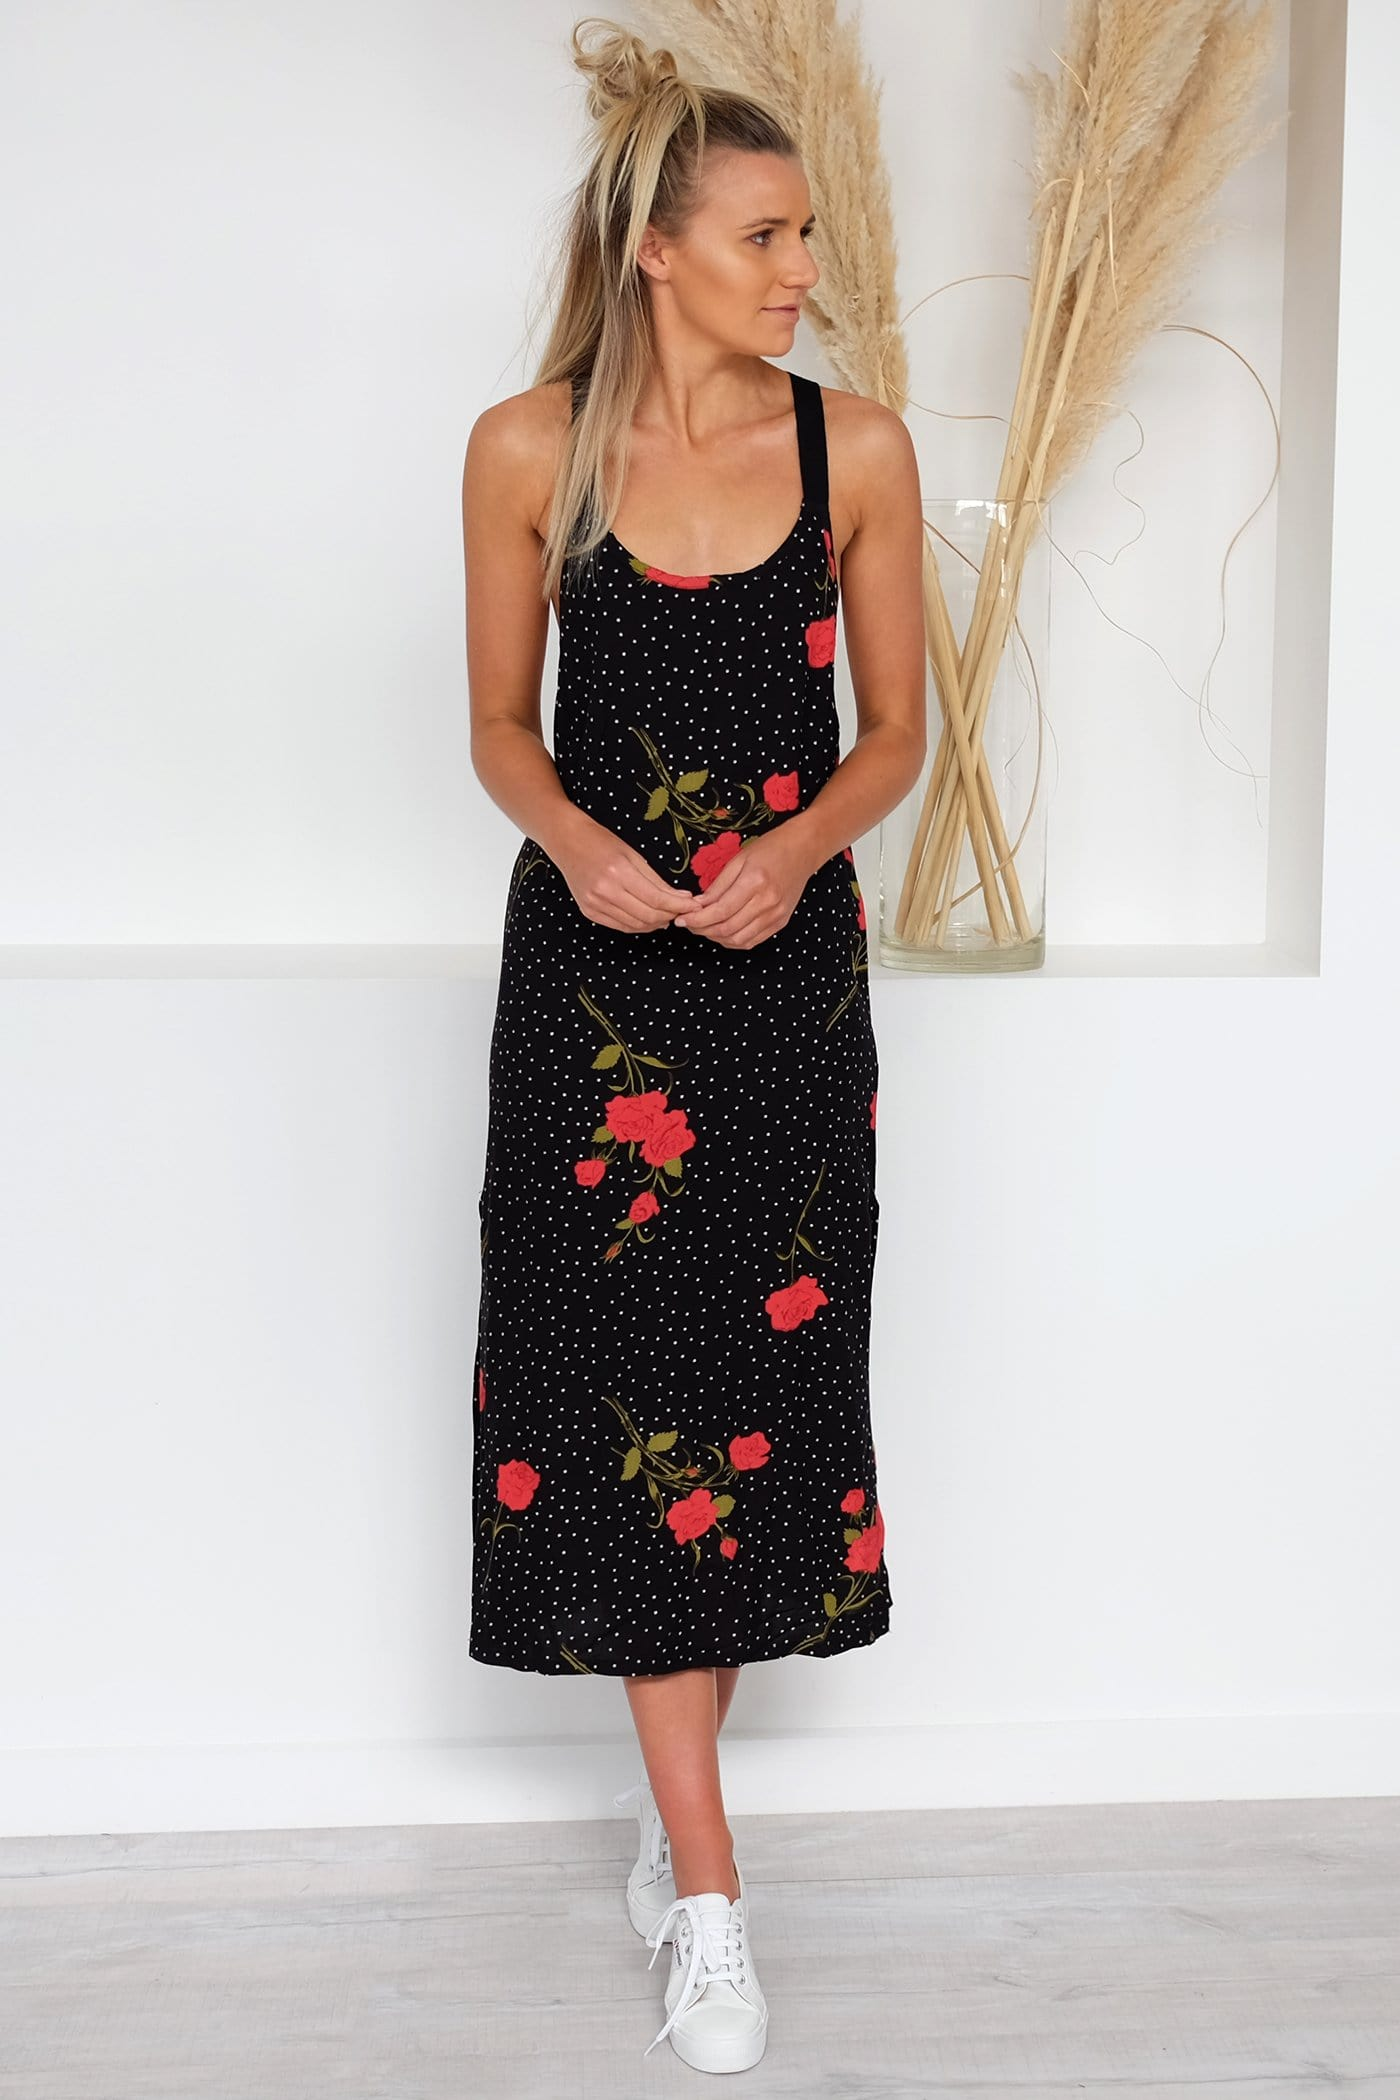 End Of The Rose Dress Black